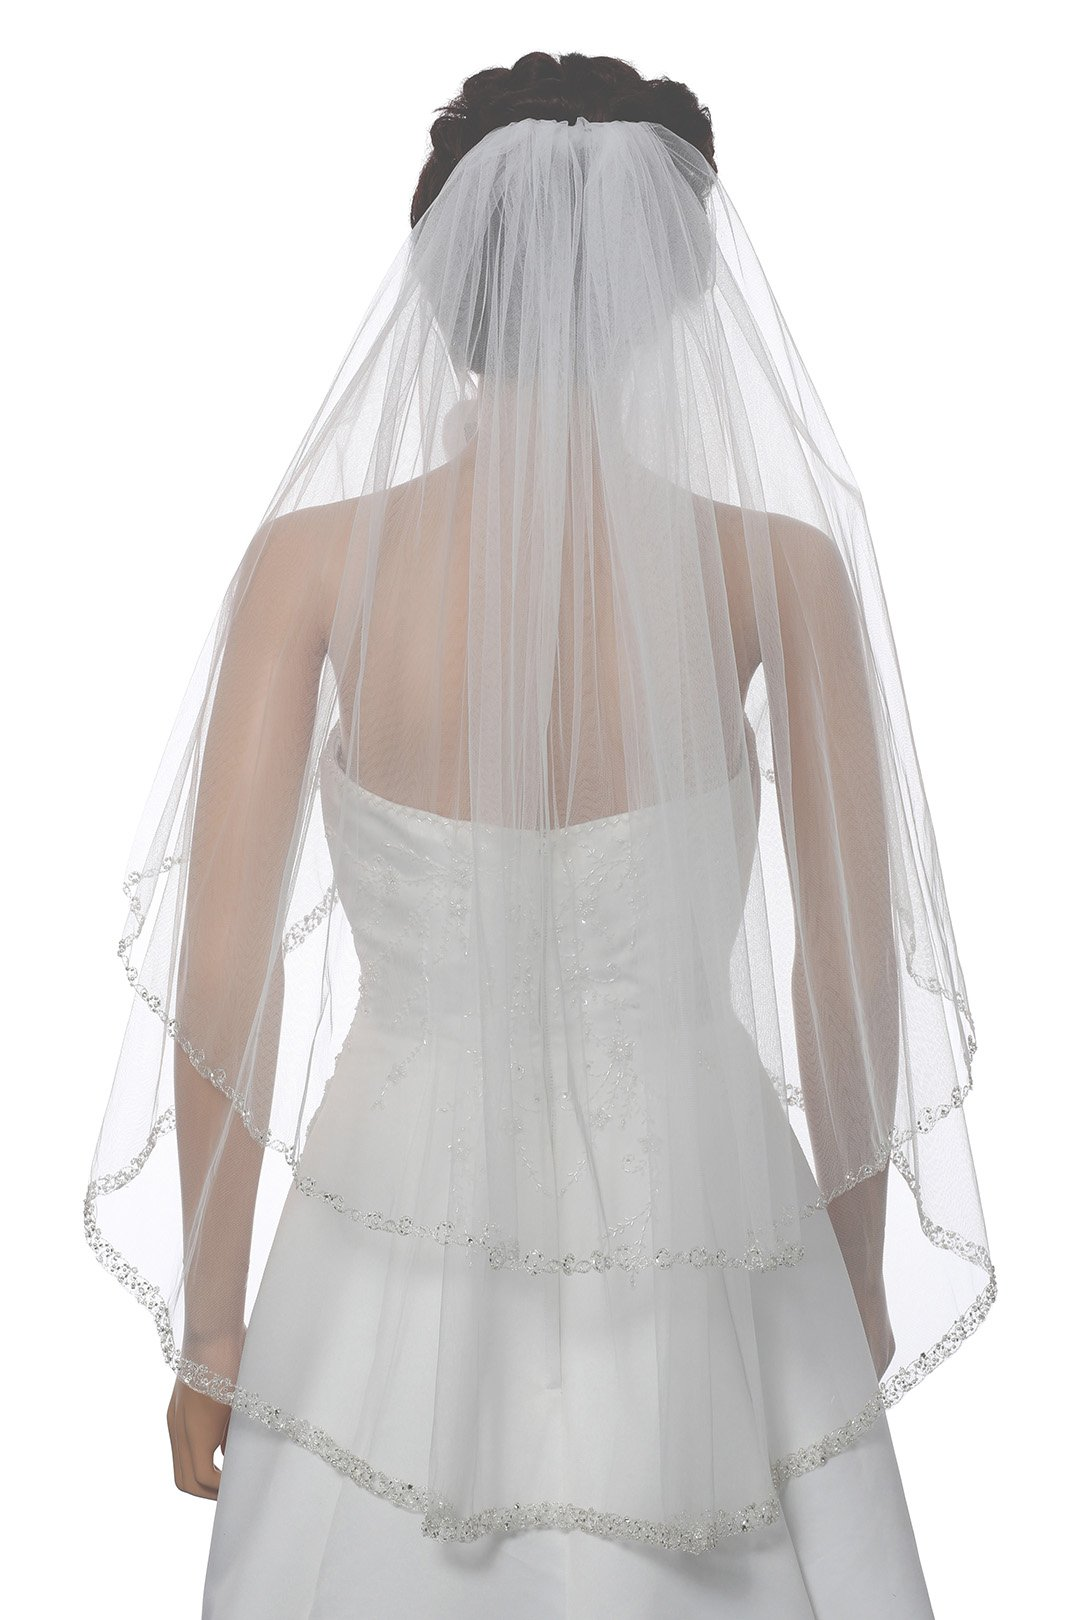 2T 2 Tier Dual Edge Embroided Pearl Crystal Beaded Veil - Ivory Fingertip Length 36'' V453 by SAMKY